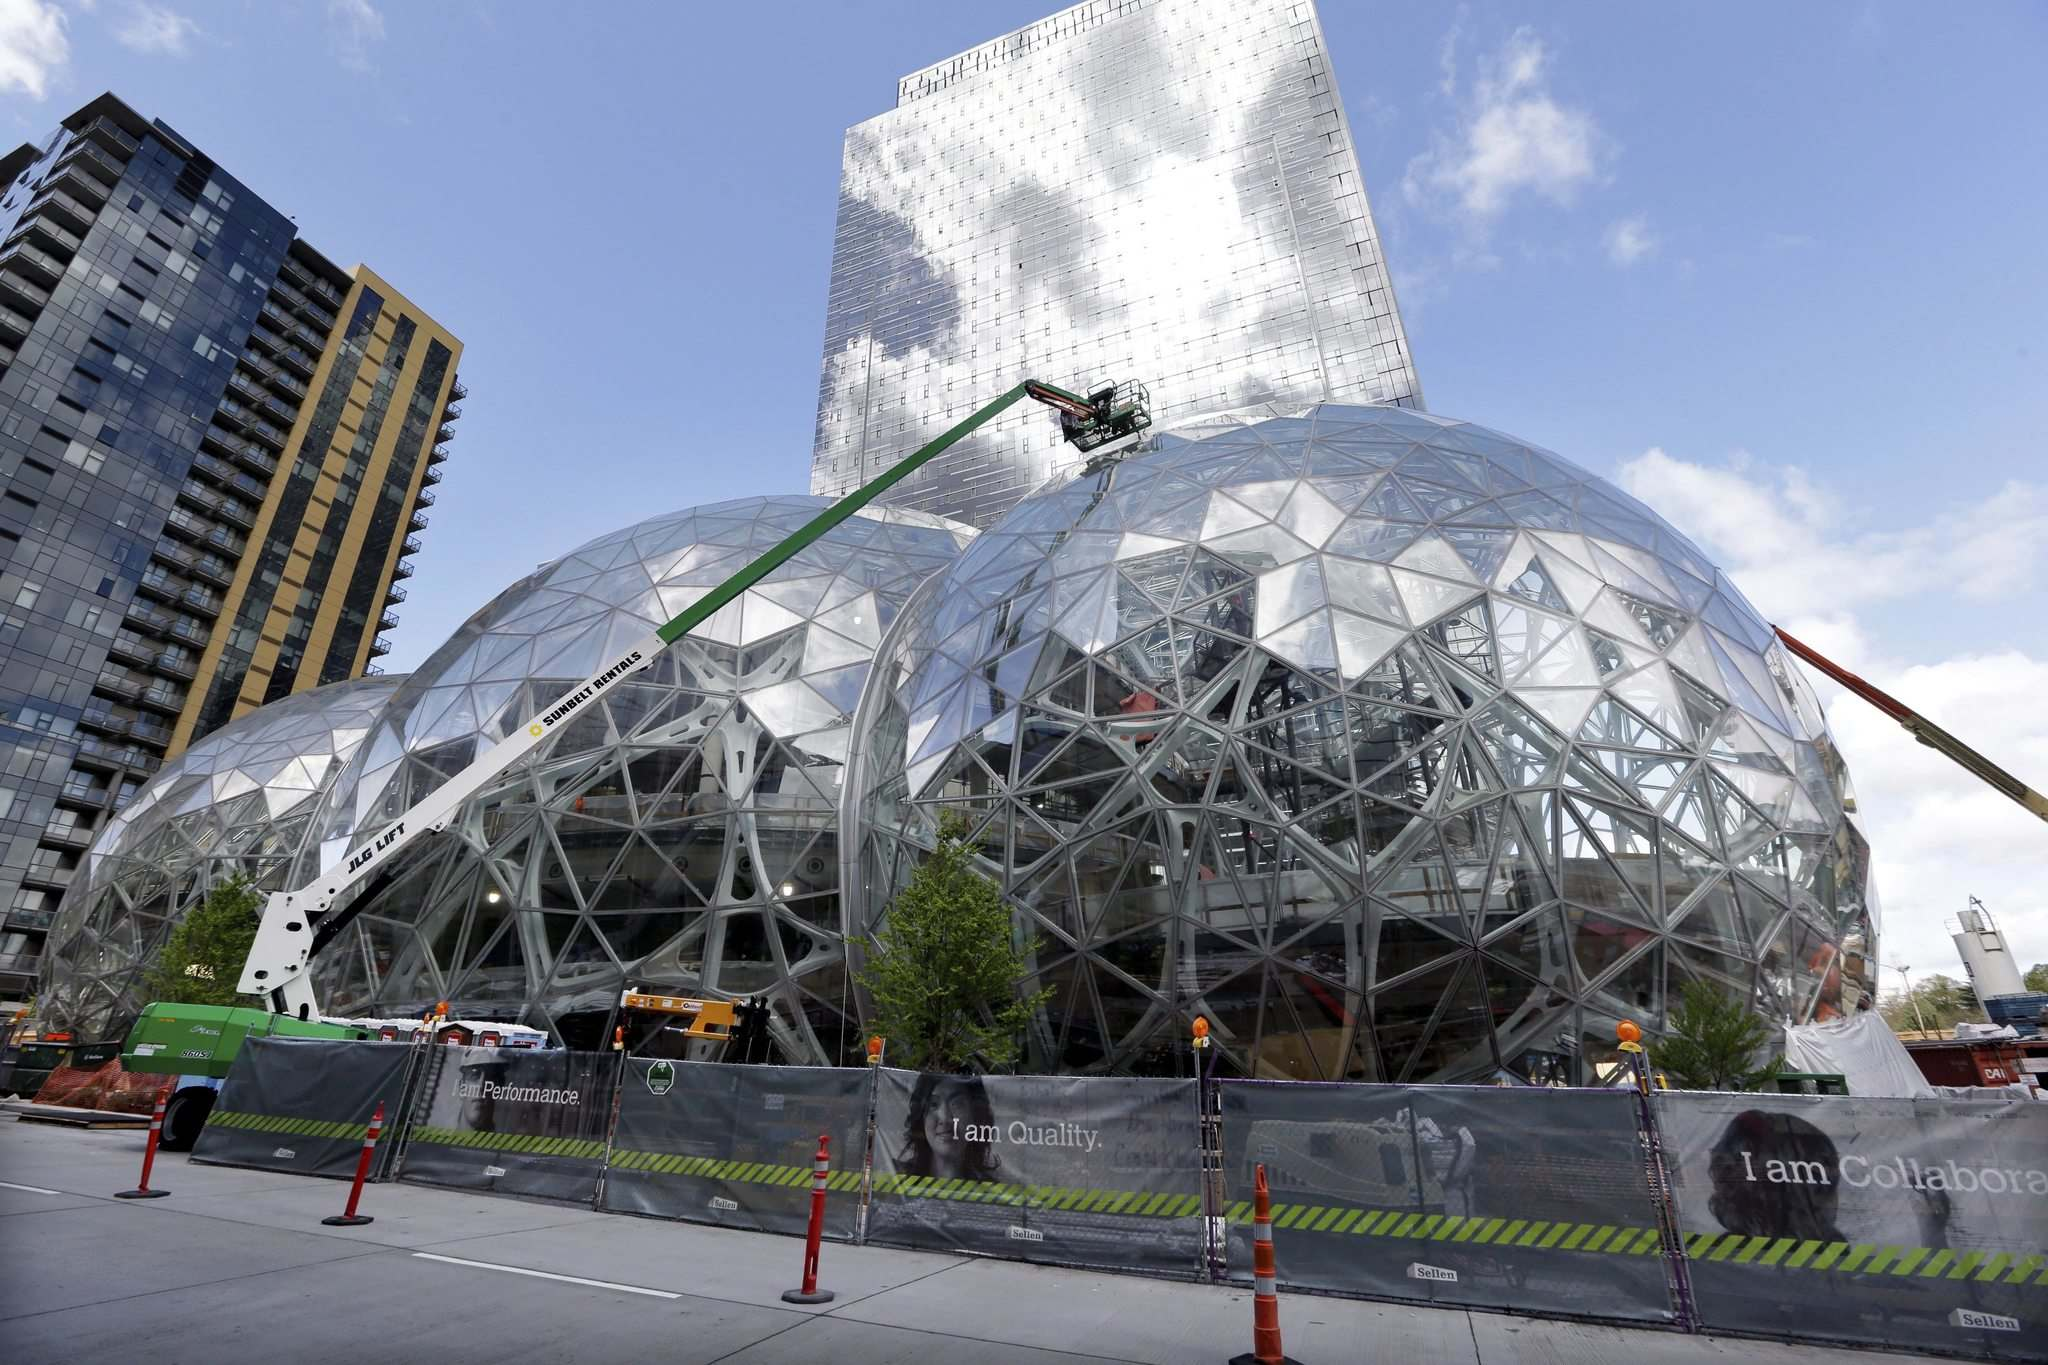 Elaine Thompson / The Associated Press Files</p><p>Construction at Amazon's campus in downtown Seattle. Amazon's search for a second headquarters provides insight into what makes a city attractive to progressive companies.</p>